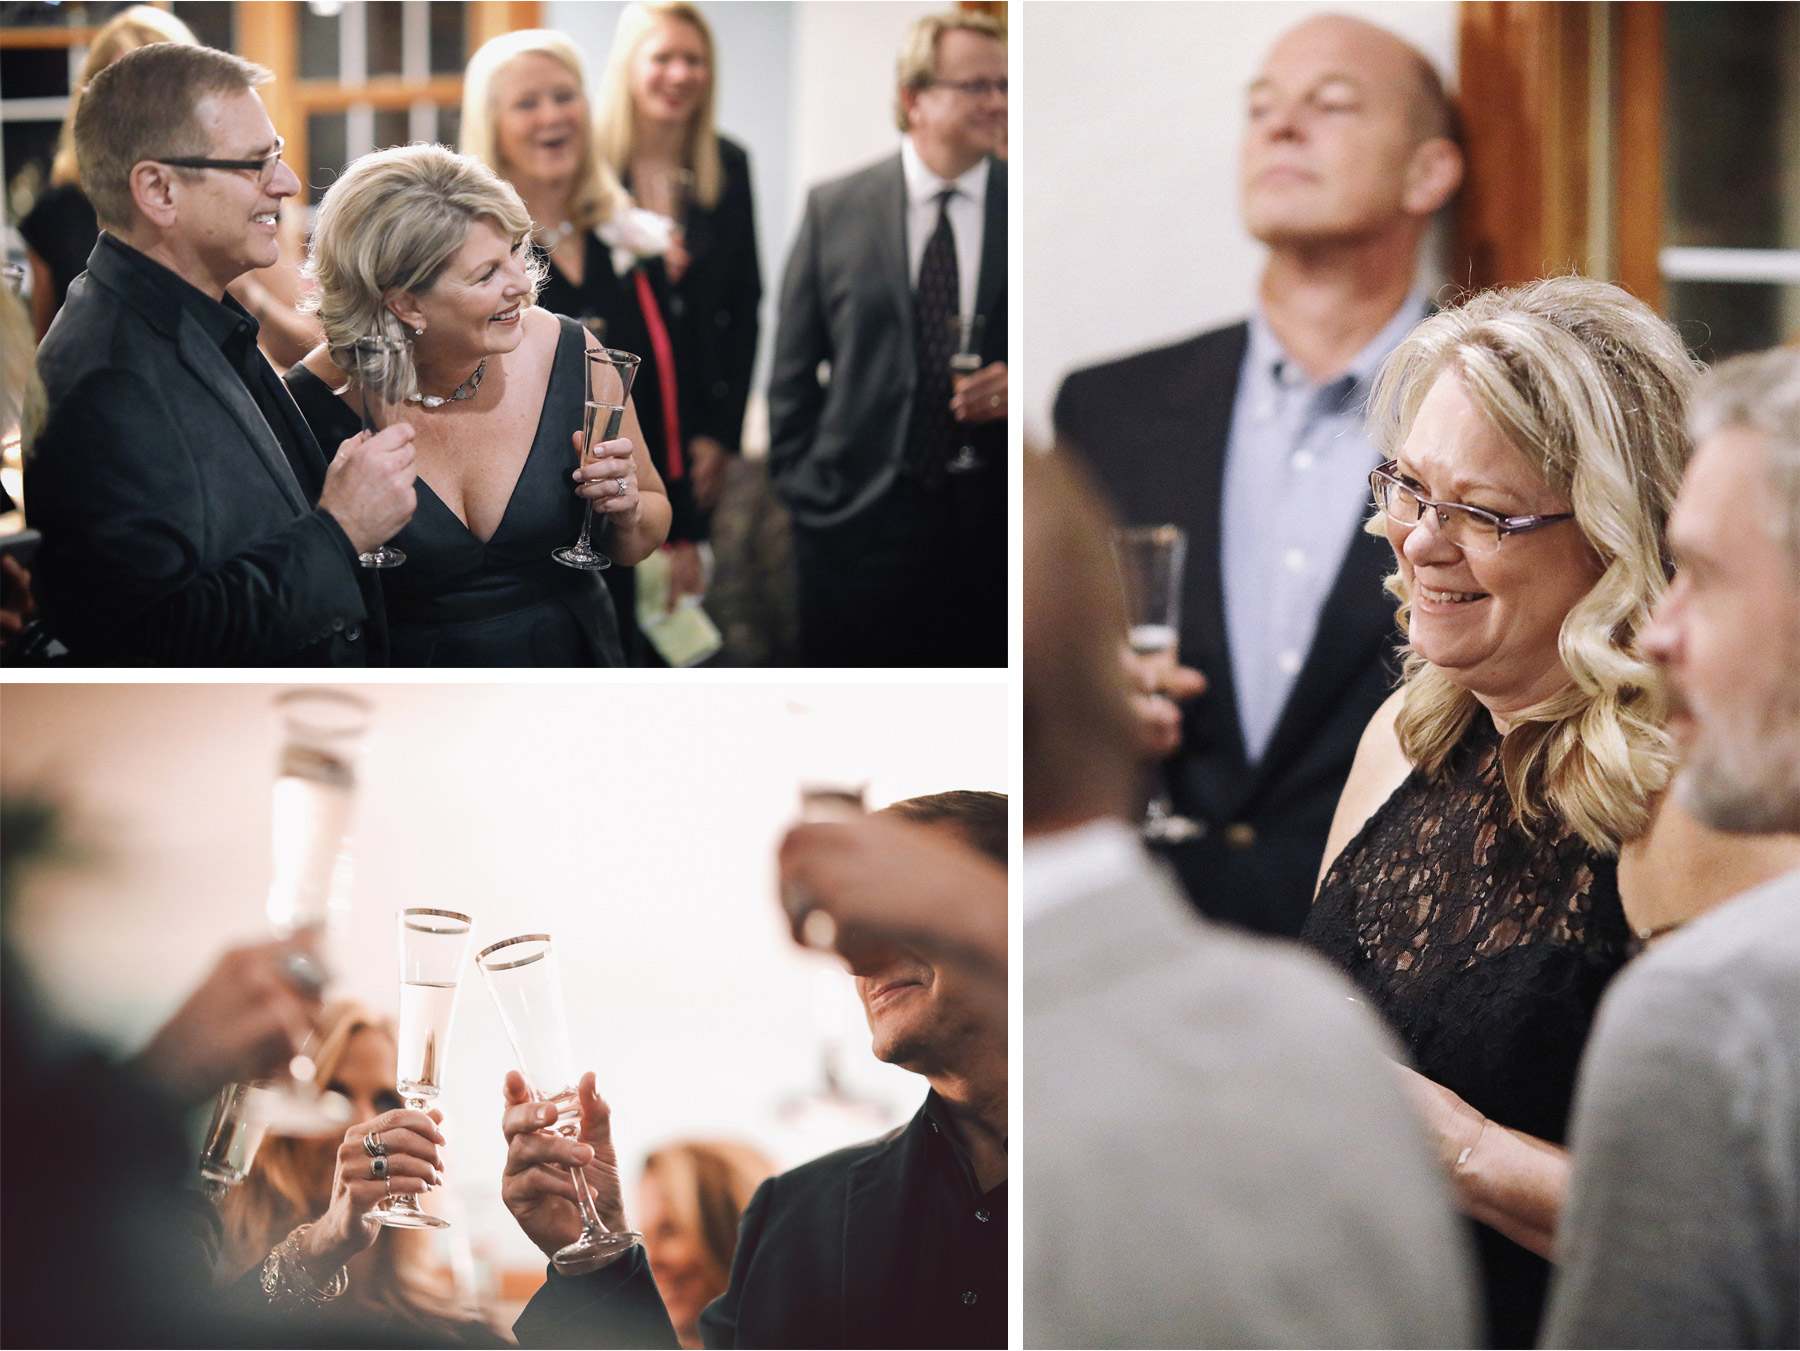 16-Minneapolis-Minnesota-Wedding-Photography-by-Vick-Photography-Home-Wedding-Living-Room-Reception-Toasts-Joan-and-Tim.jpg